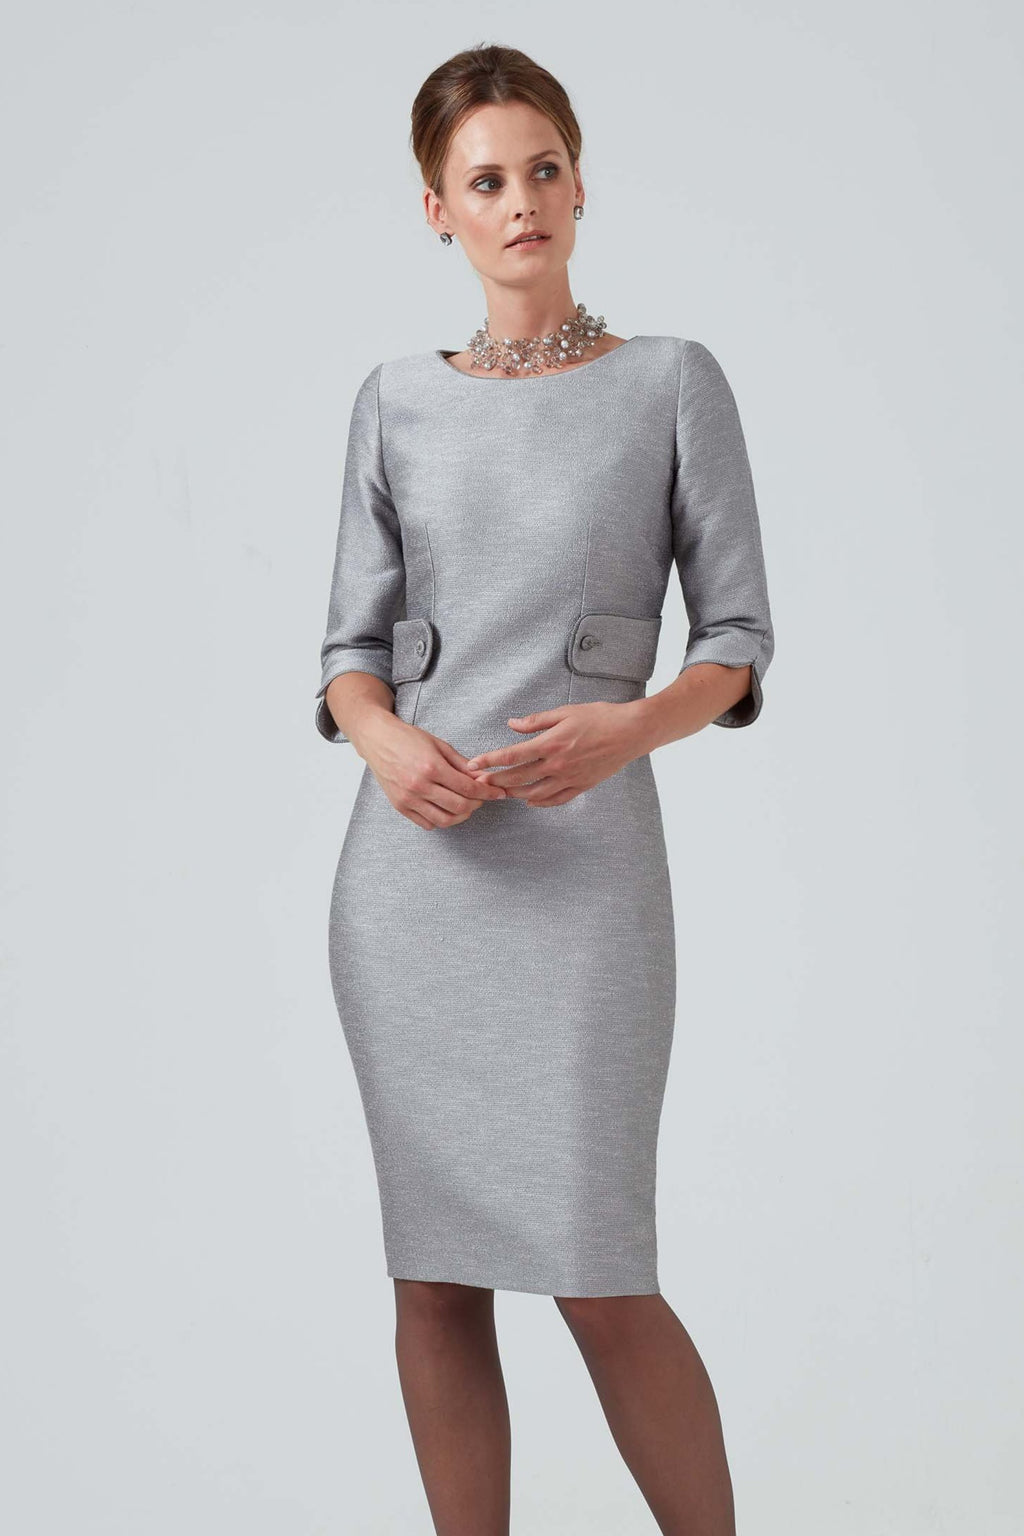 Silver mother of the bride dress in 3/4 sleeves